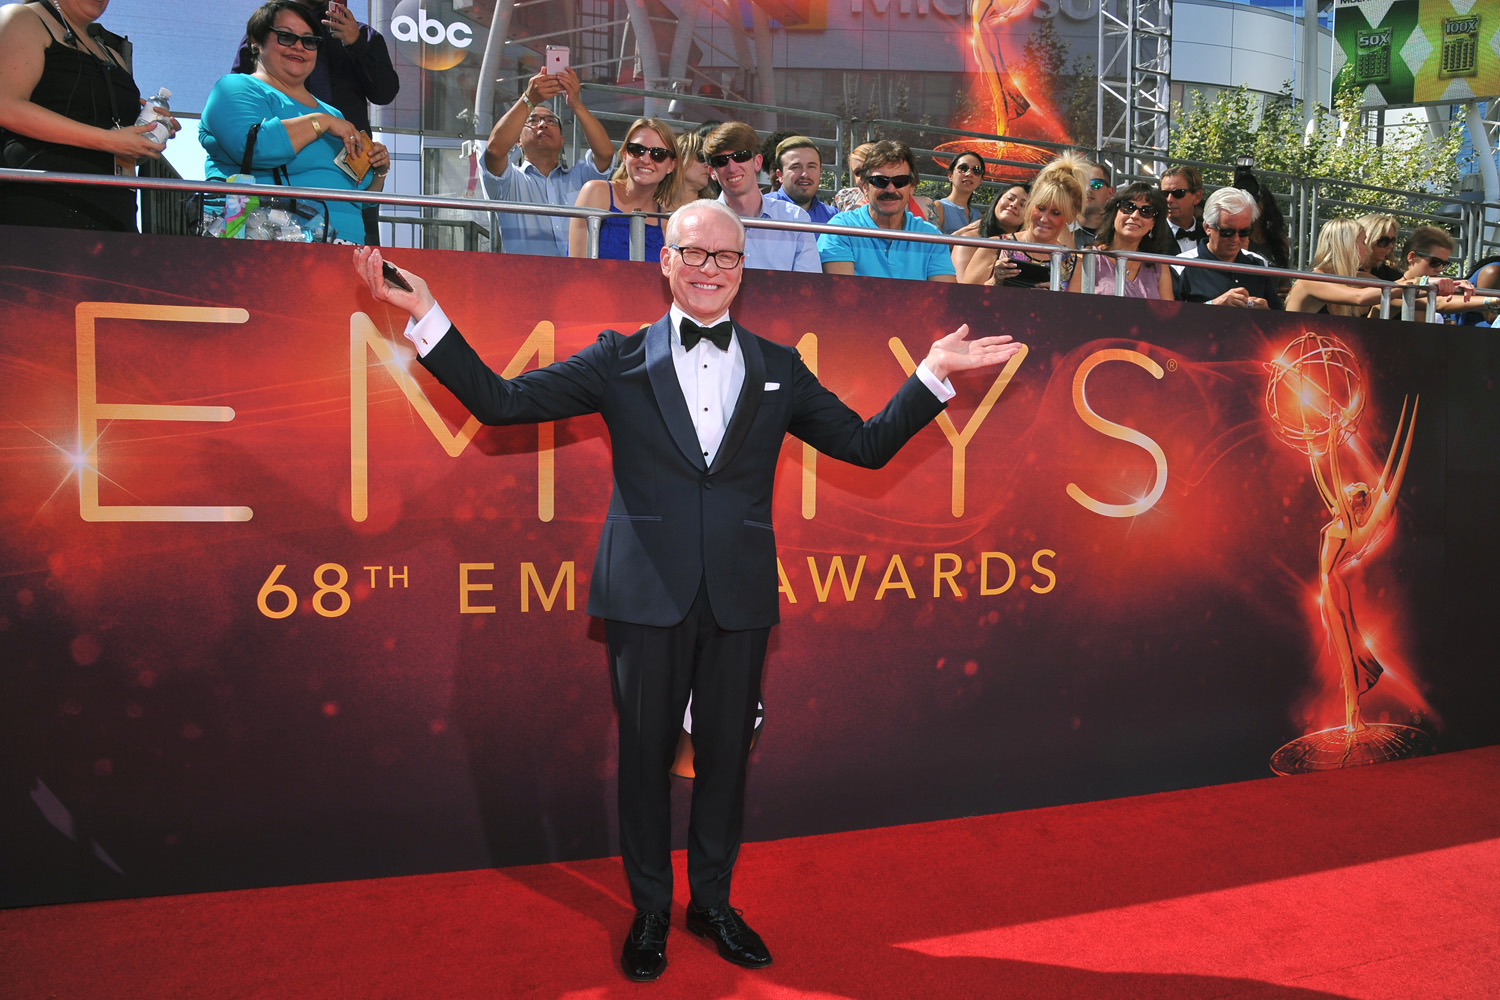 Tim Gunn arrives at the 68th Primetime Emmy Awards on Sunday, Sept. 18, 2016, at the Microsoft Theater in Los Angeles. (Vince Bucc/AP)